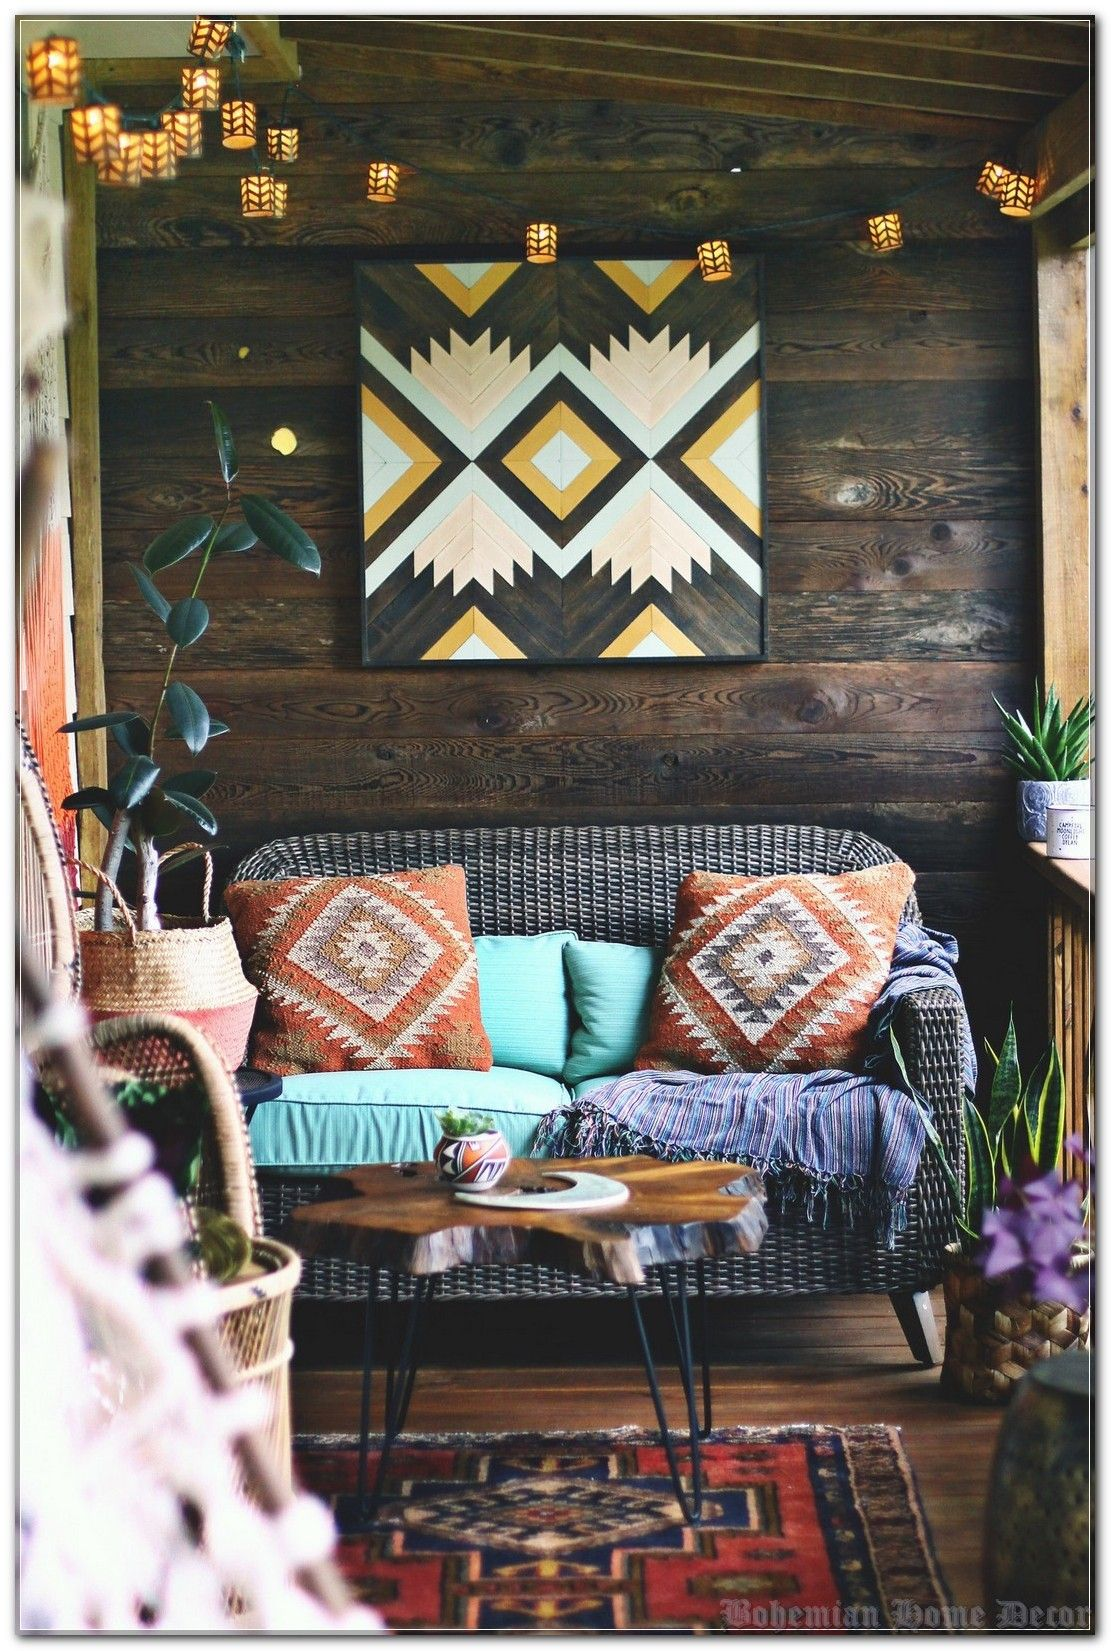 Get Rid of Bohemian Home Decor For Good